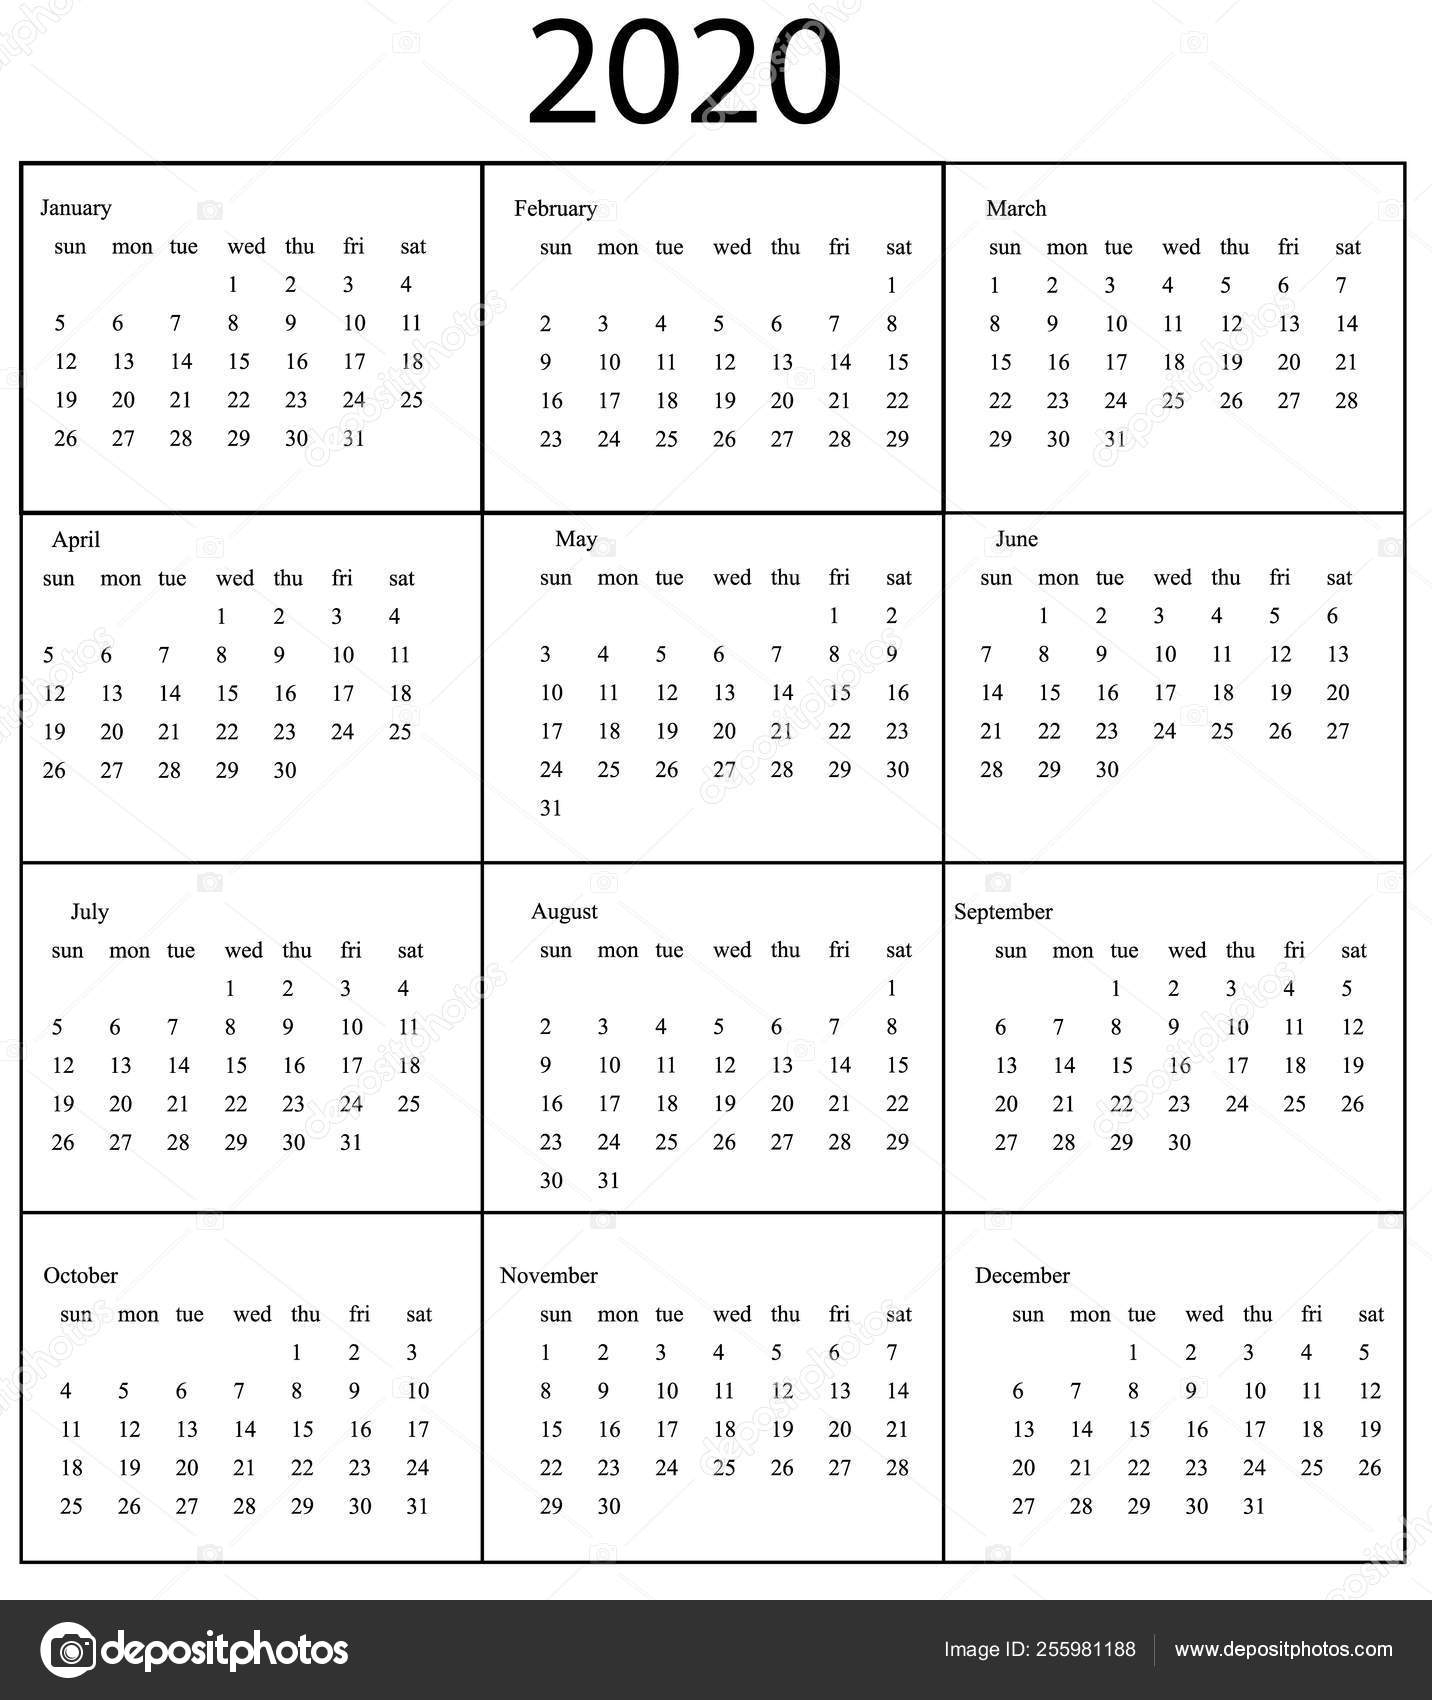 2020 Calendar Template. Starts Sunday — Векторное Изображение with regard to Calender 2020 Template Monday To Sunday